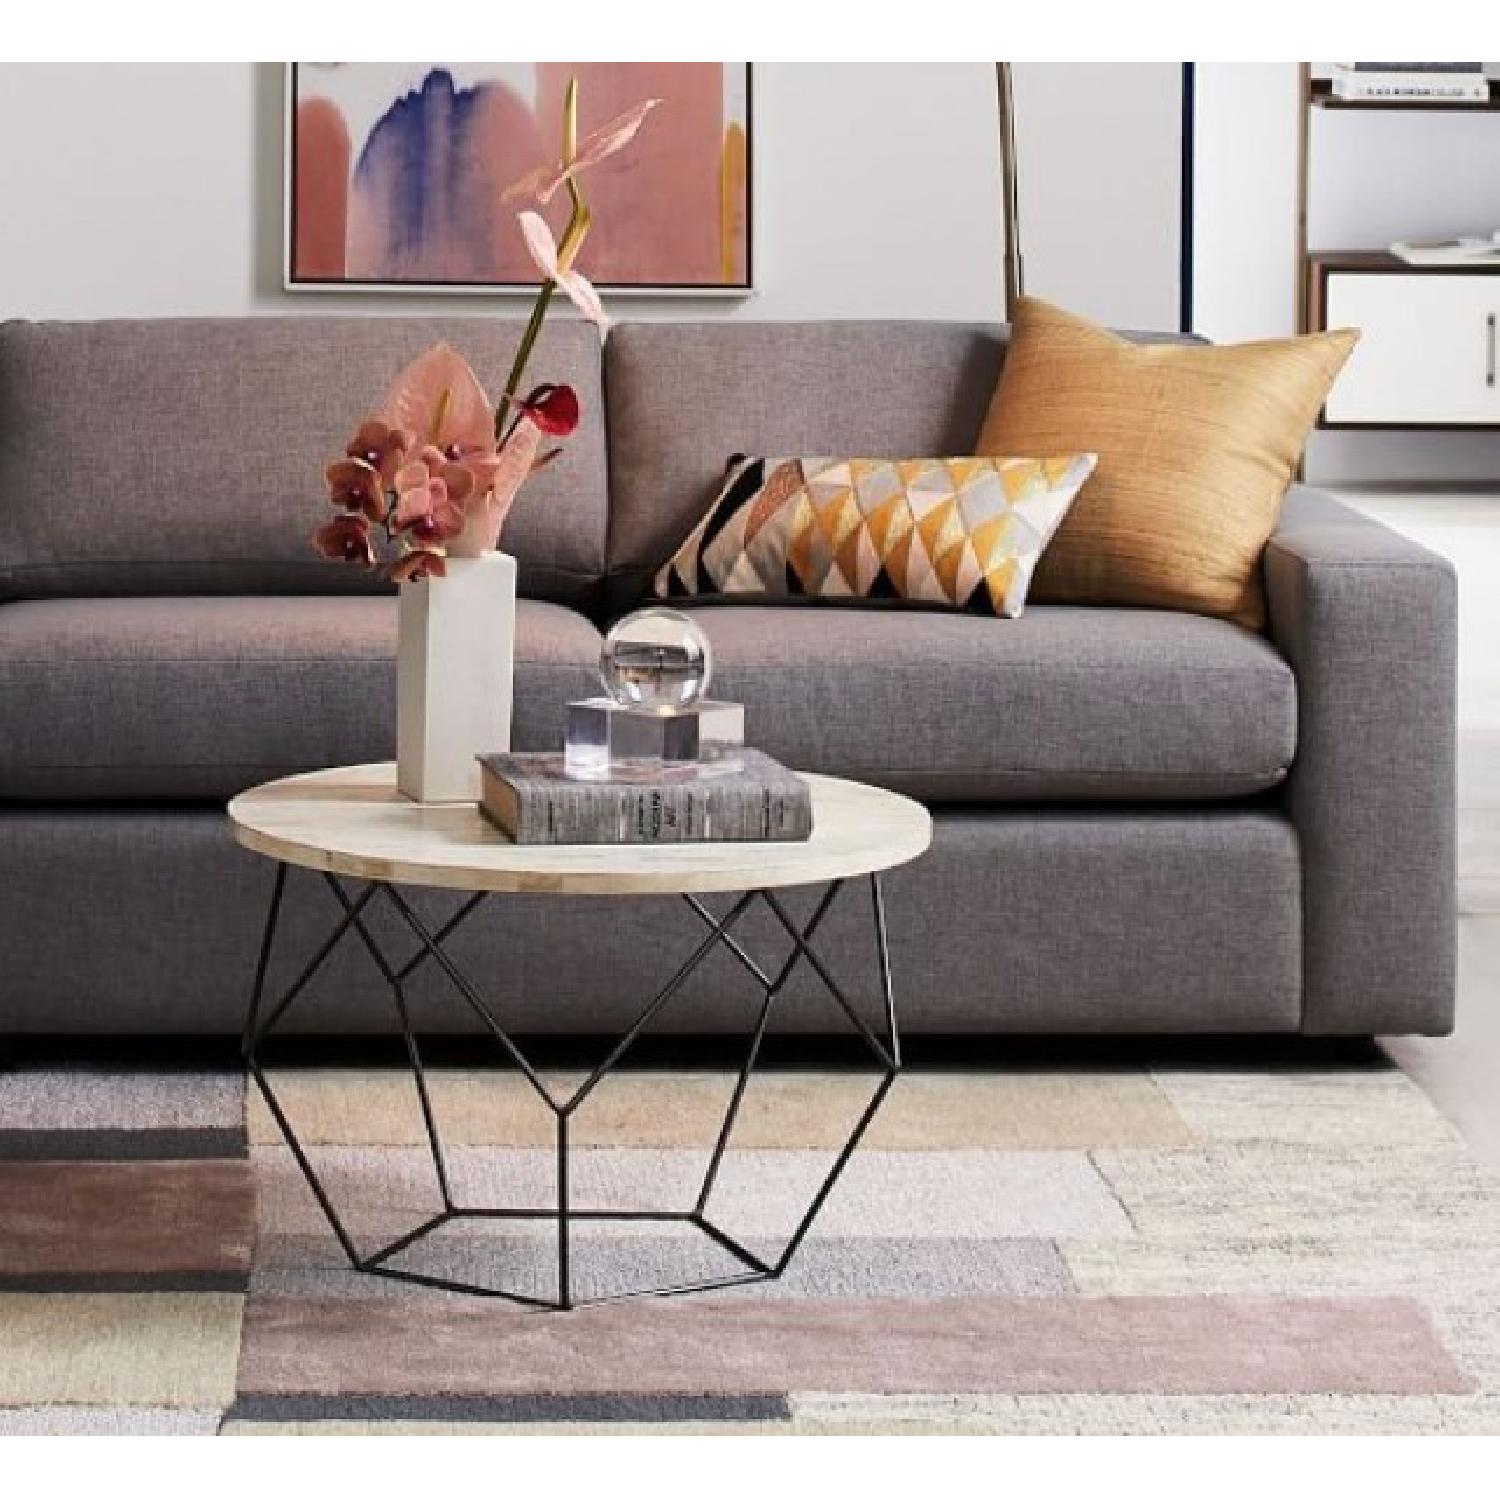 ... West Elm Origami Coffee Table 1 ...